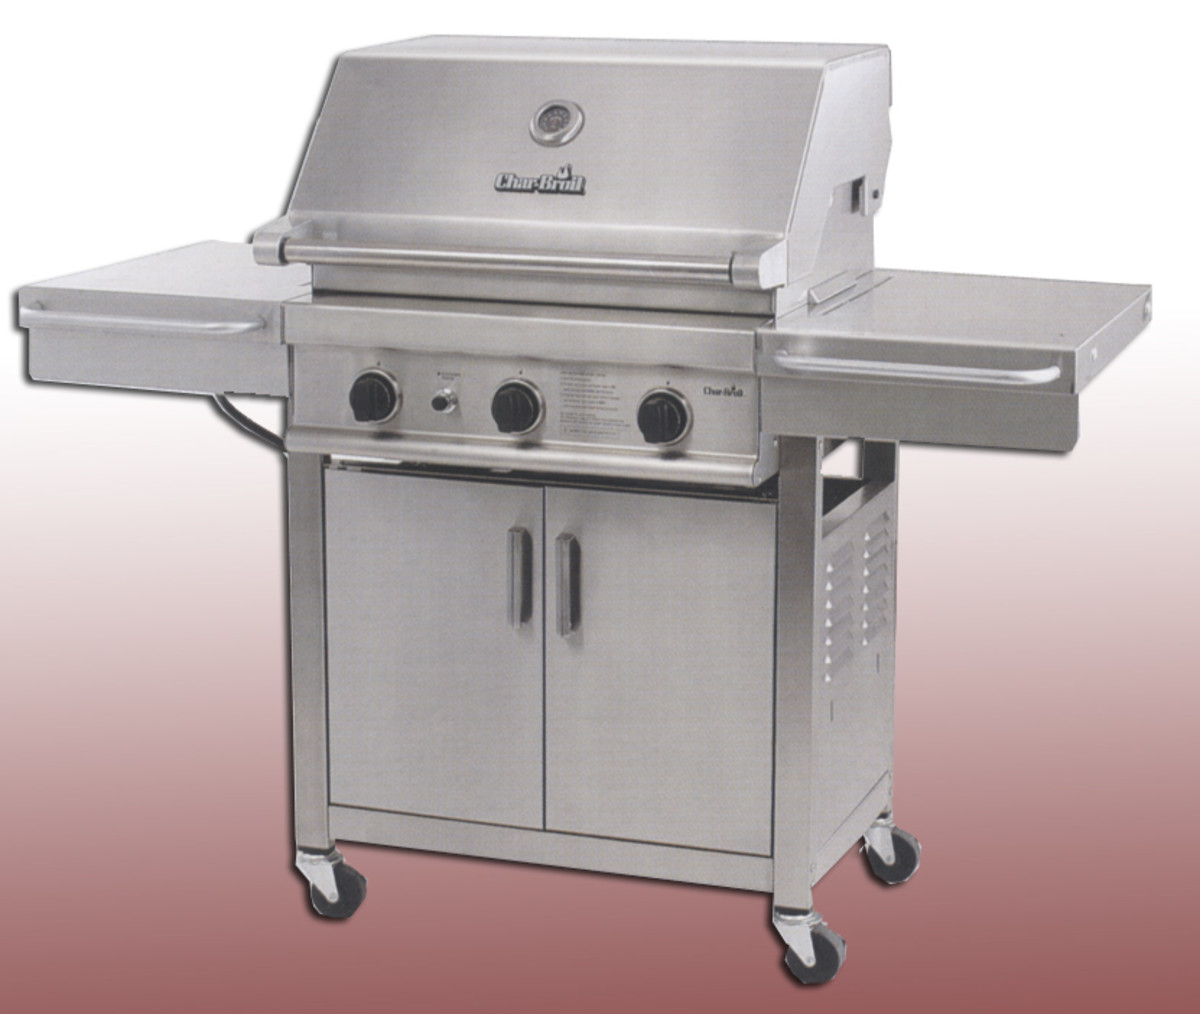 Charbroil stainless series model 4632321 with 3 cast burners, double wall stainess hood, towel bar and hooks, 45,000 btu and comes with a grill grate lifter.